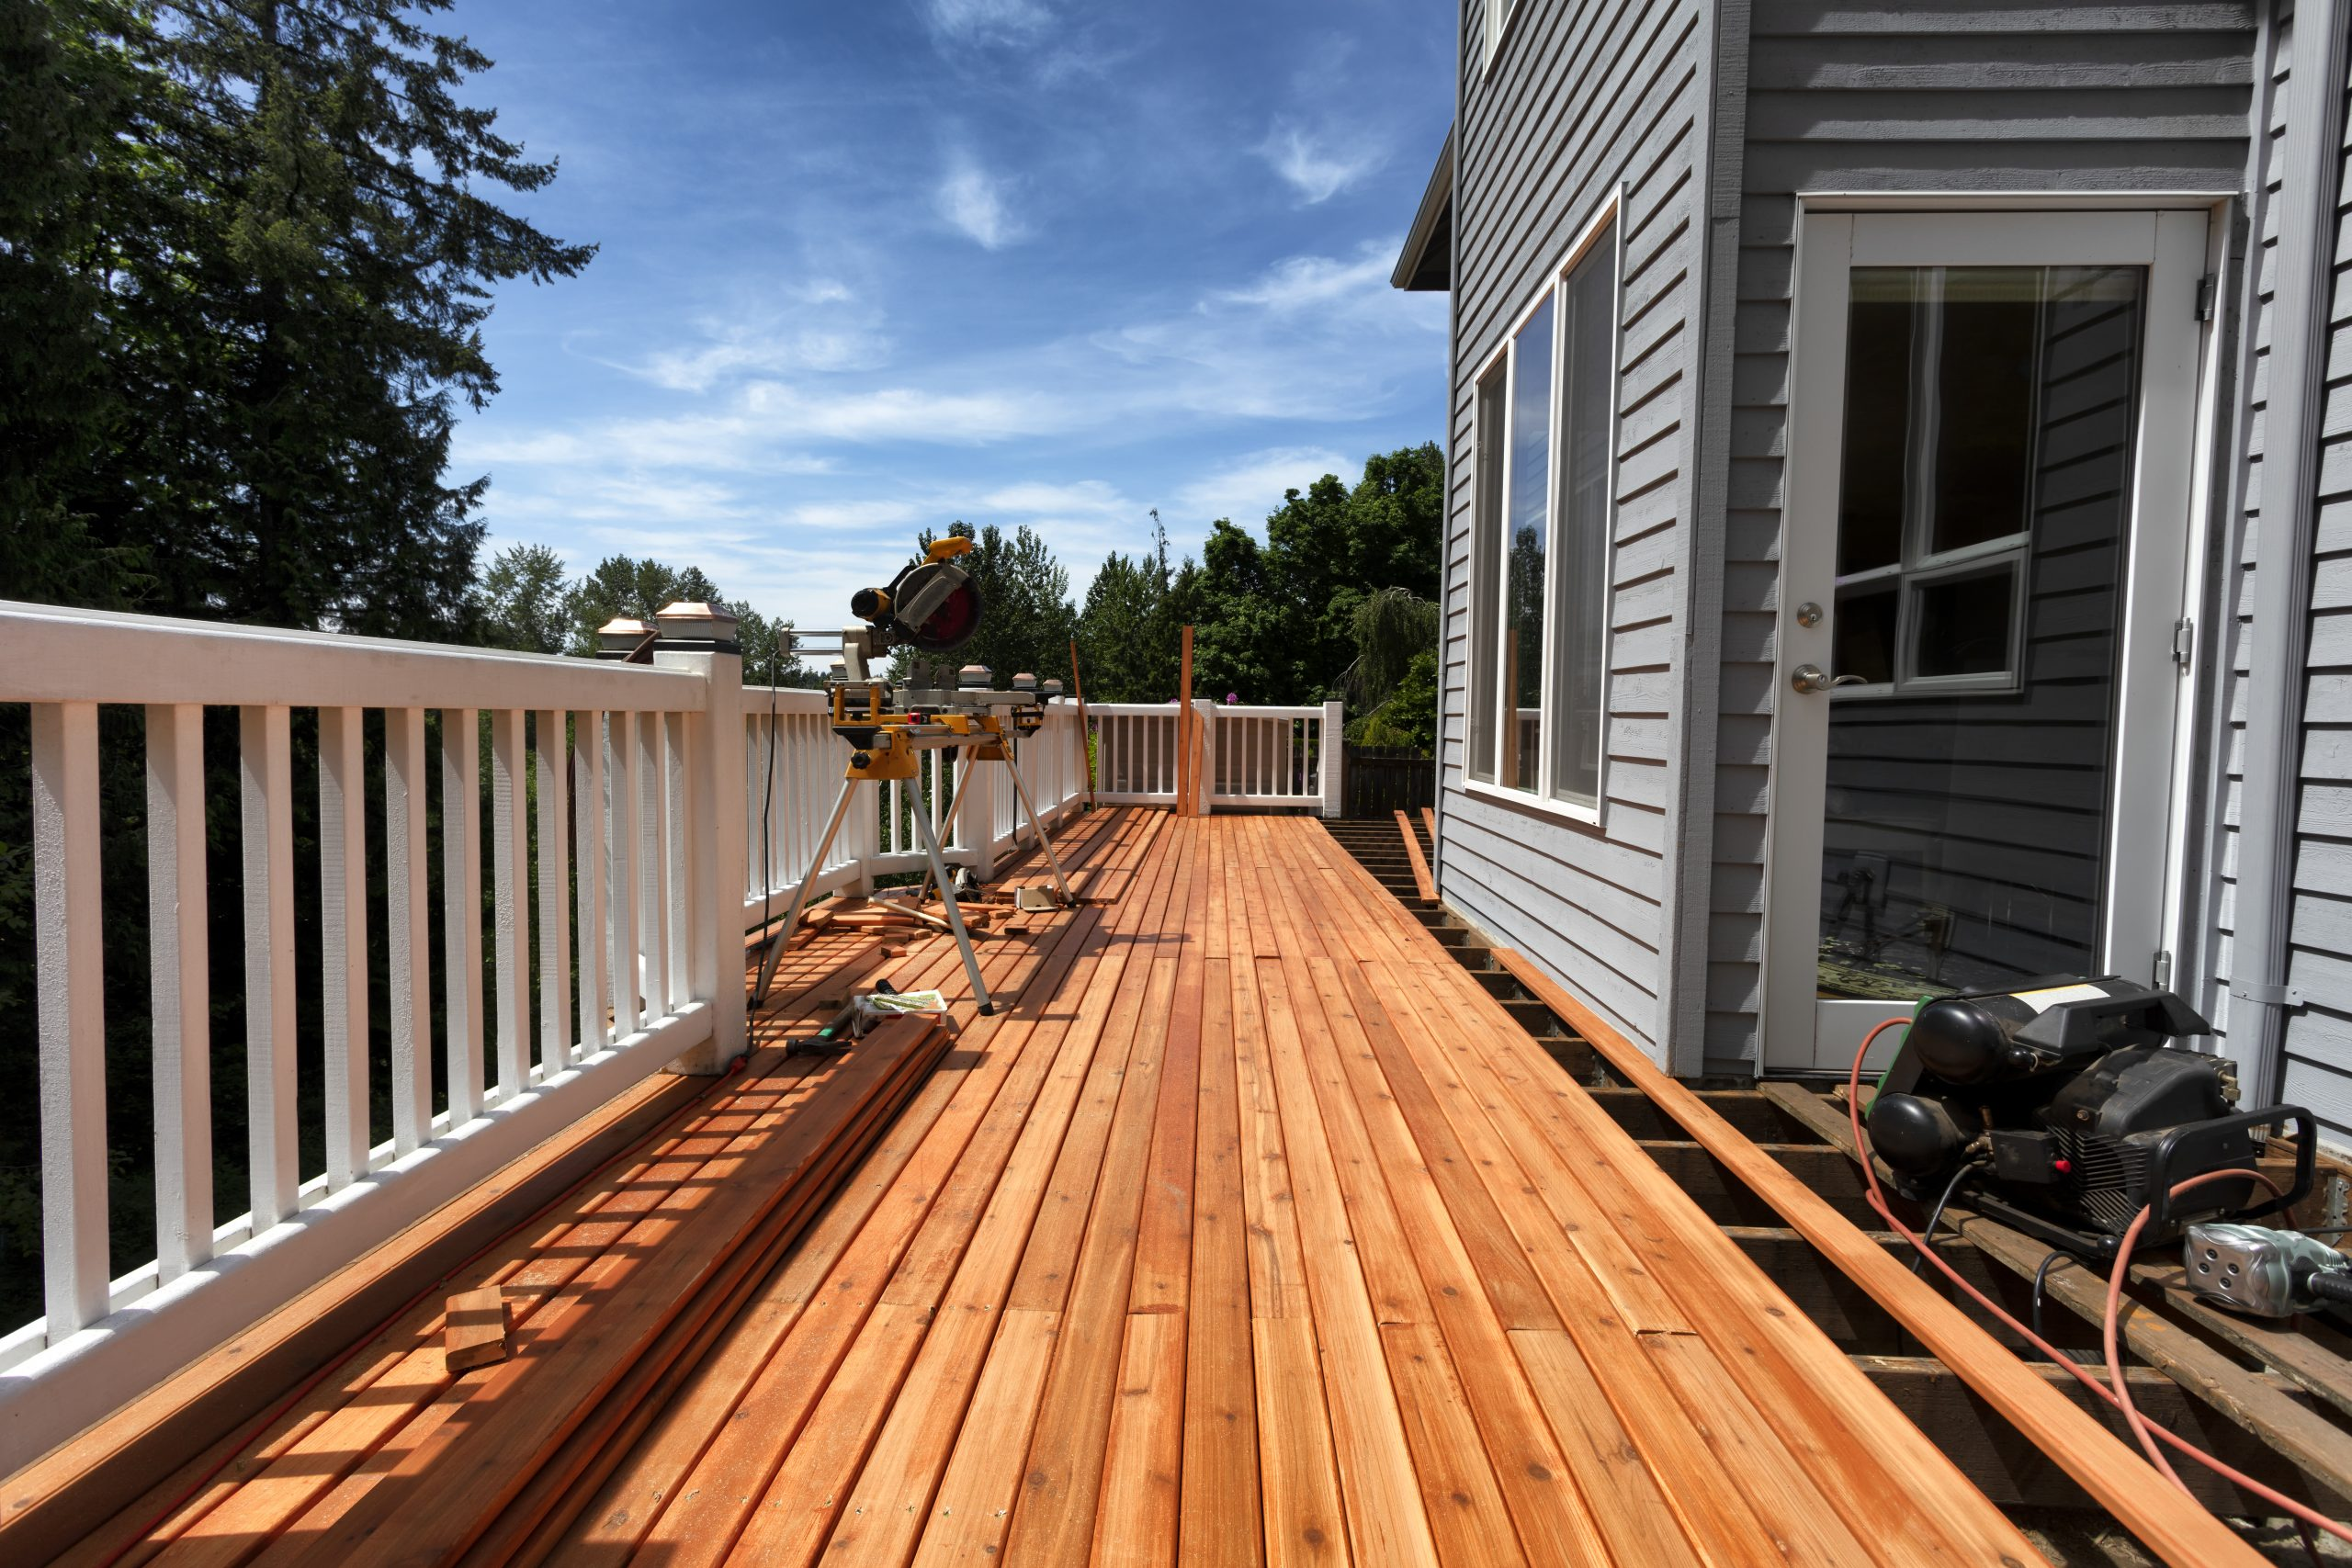 Deck and Siding Installation and Renovation in Morton Grove